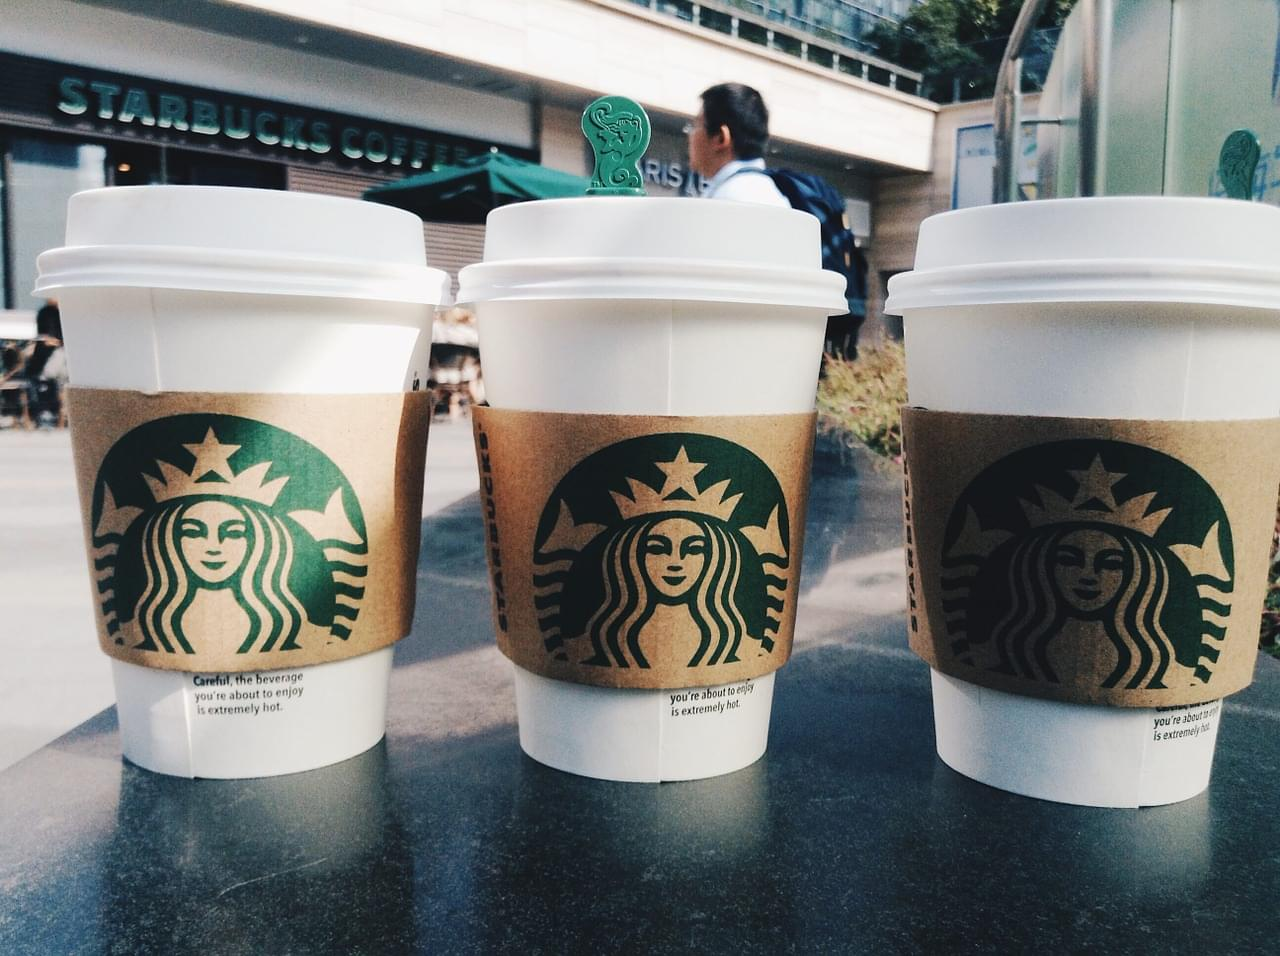 Starbucks Offering FREE COFFEE